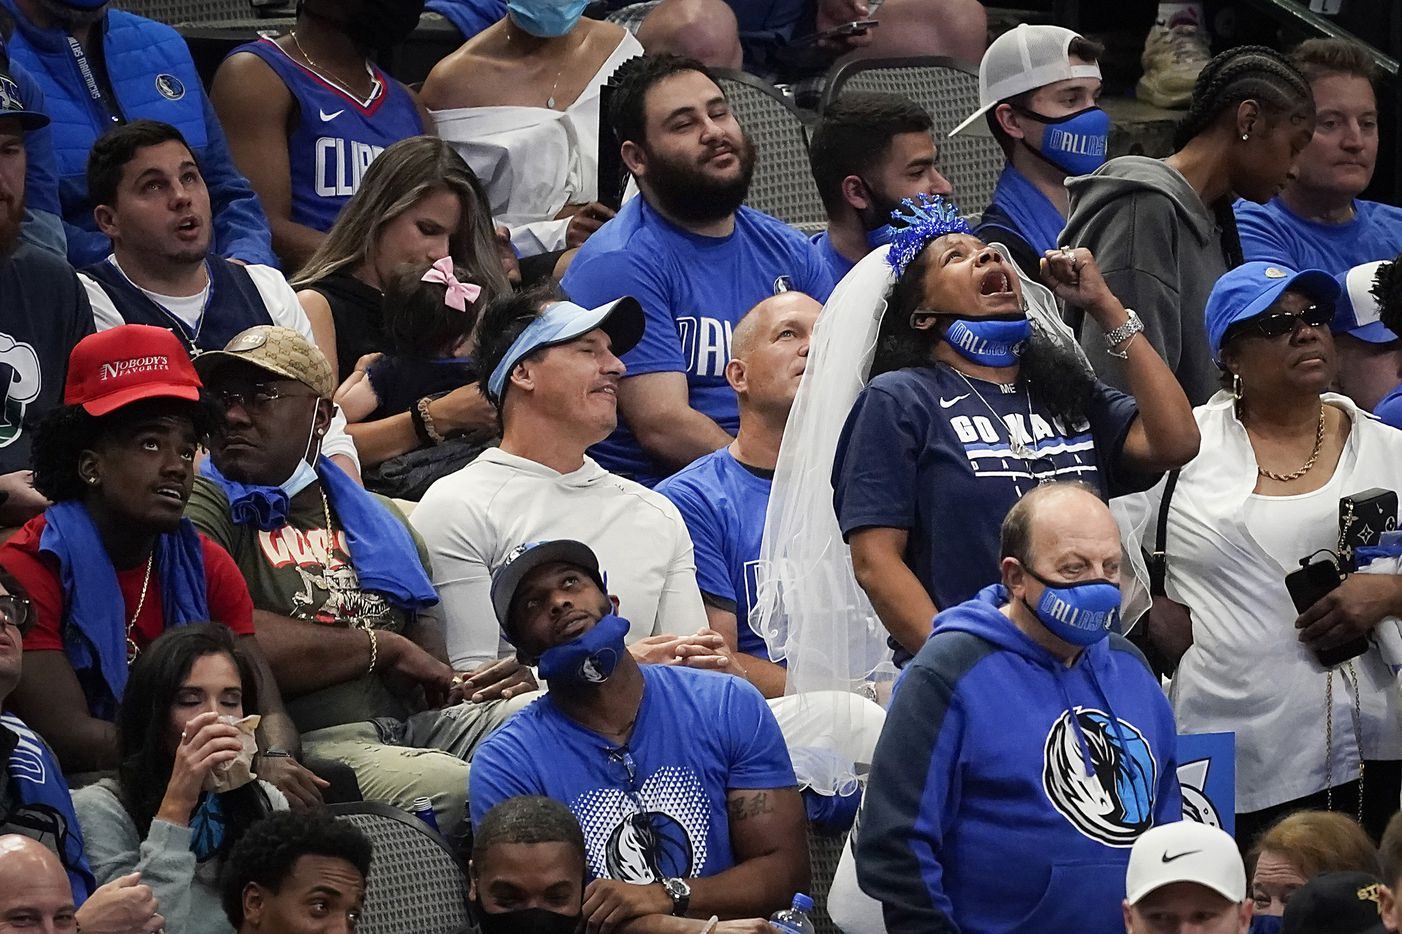 A Dallas Mavericks fan reacts to a play during the fourth quarter of an NBA playoff basketball game against the LA Clippers at American Airlines Center on Friday, May 28, 2021, in Dallas.